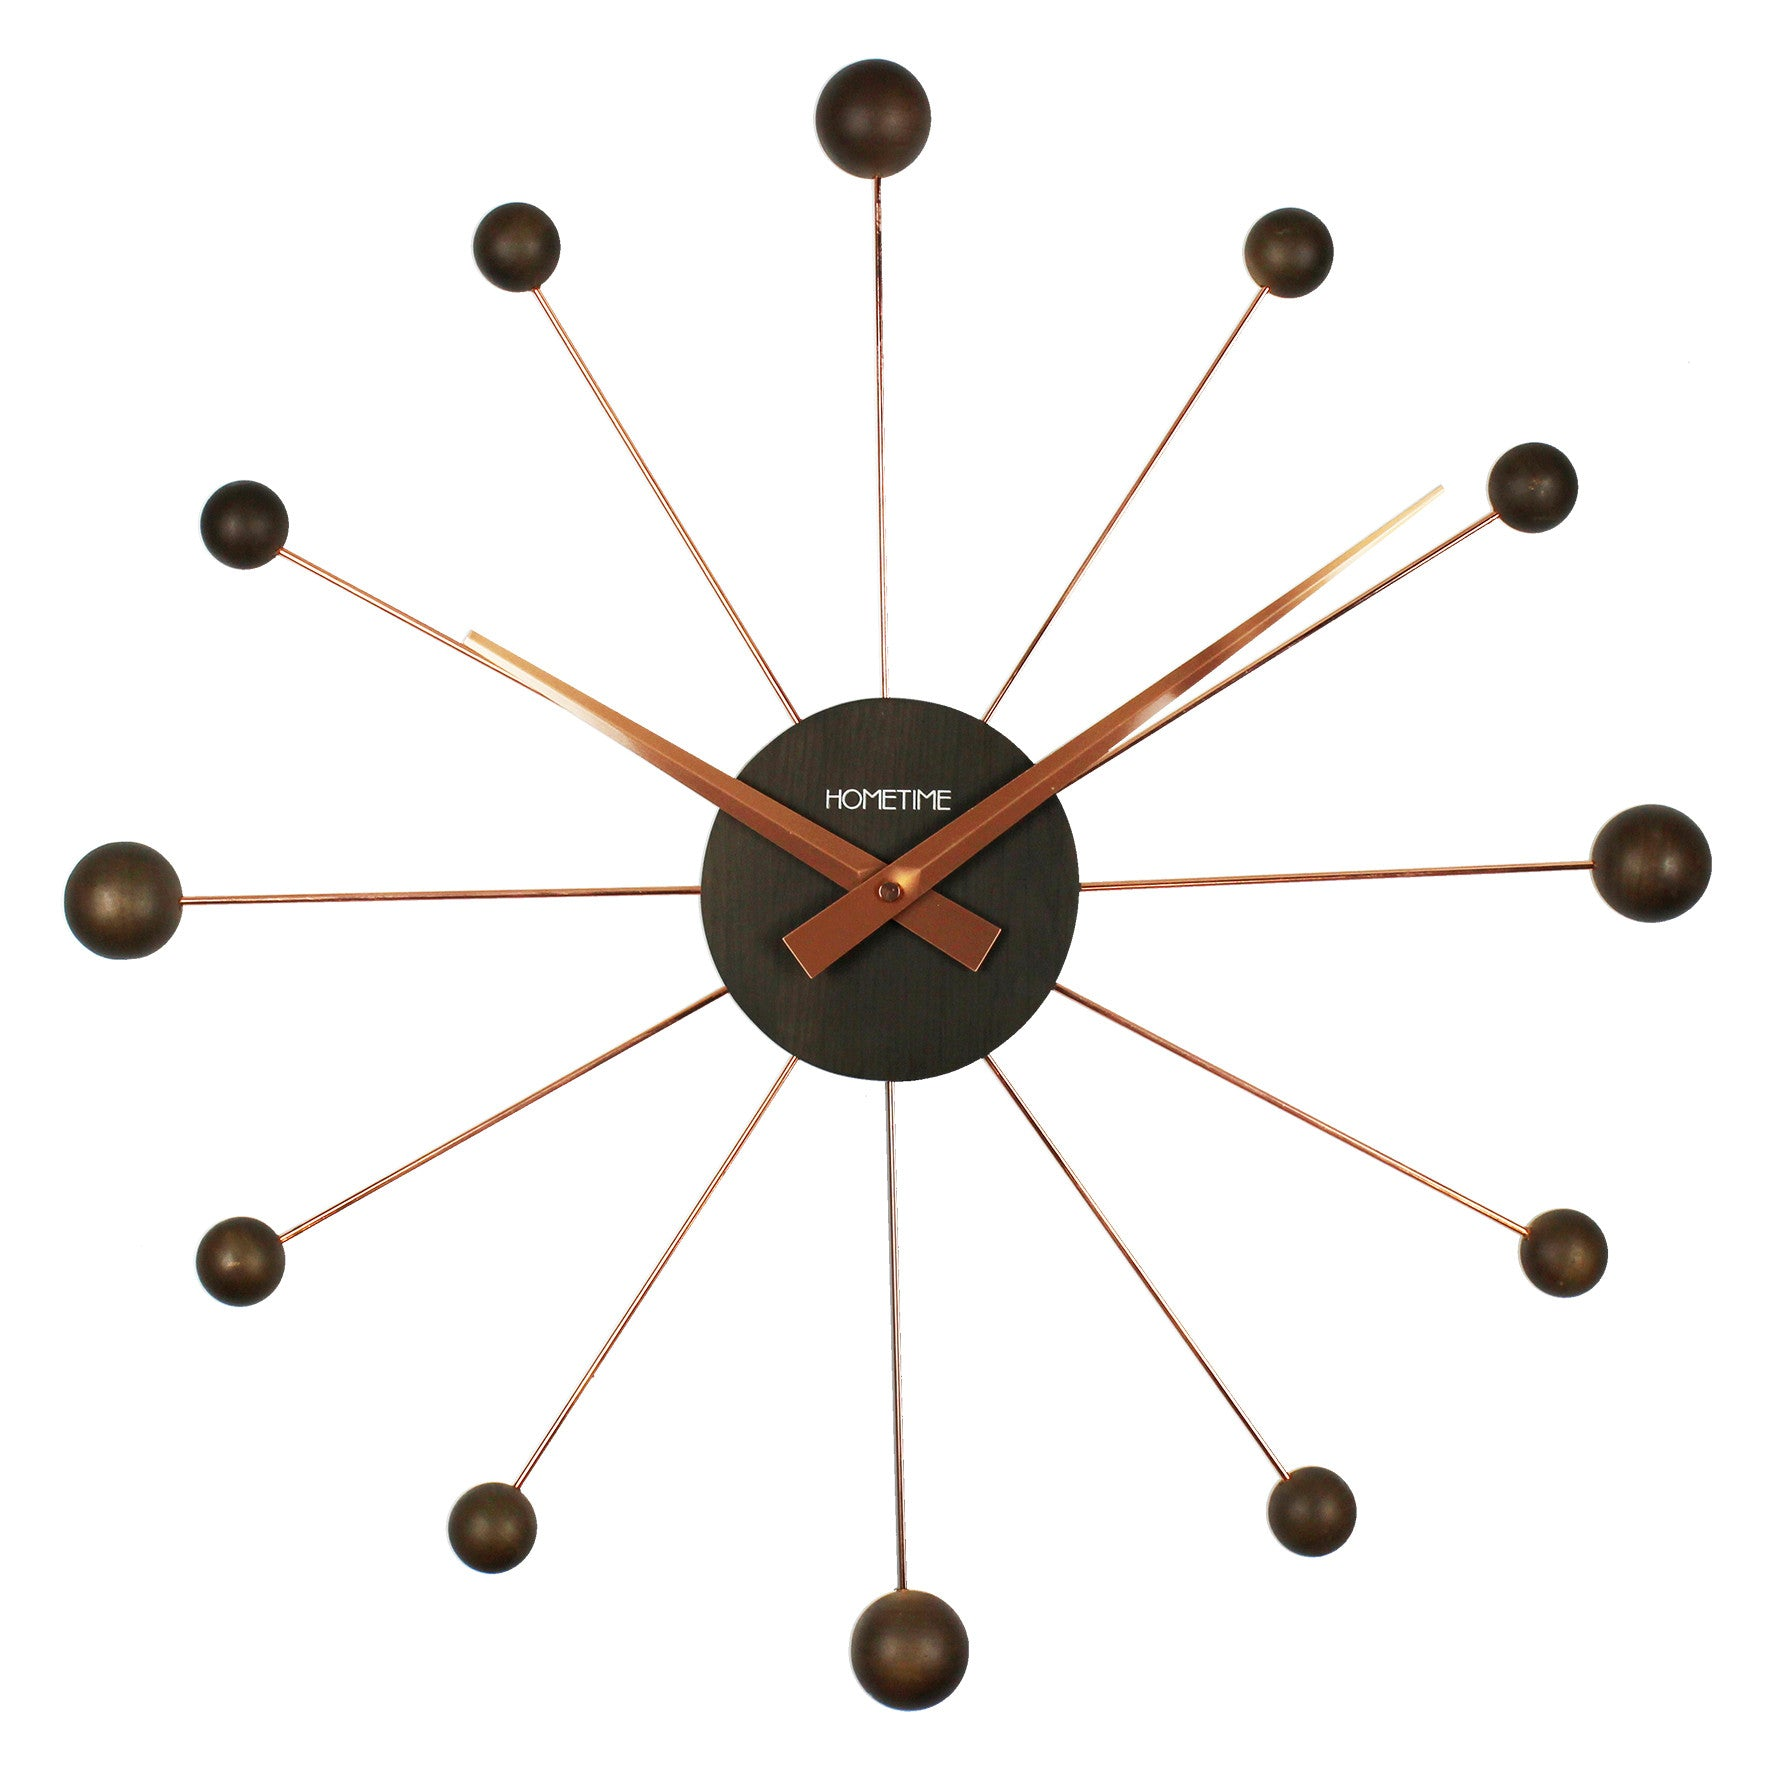 Hometime Chrome & Wooden Wall Clock Balls 50cm-W7310W - Homely Nigeria - 1